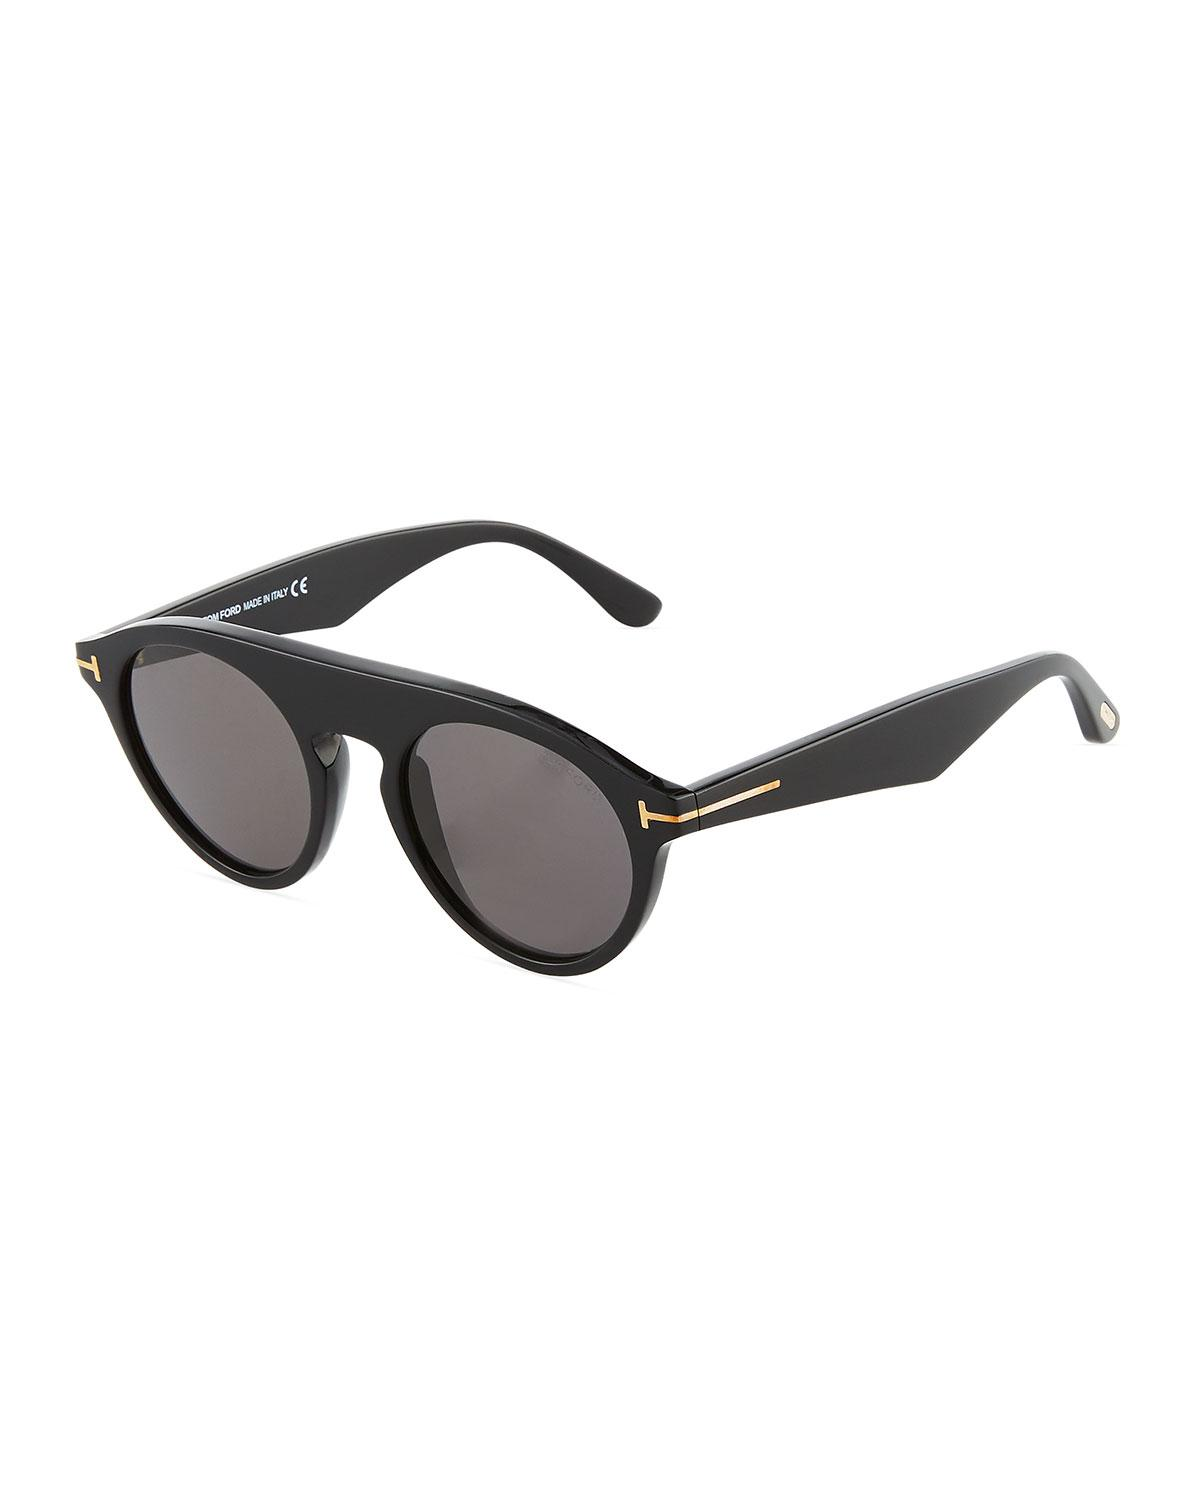 c6849389114d Lyst - Tom Ford Christopher Semi-shield Acetate Sunglasses in Black